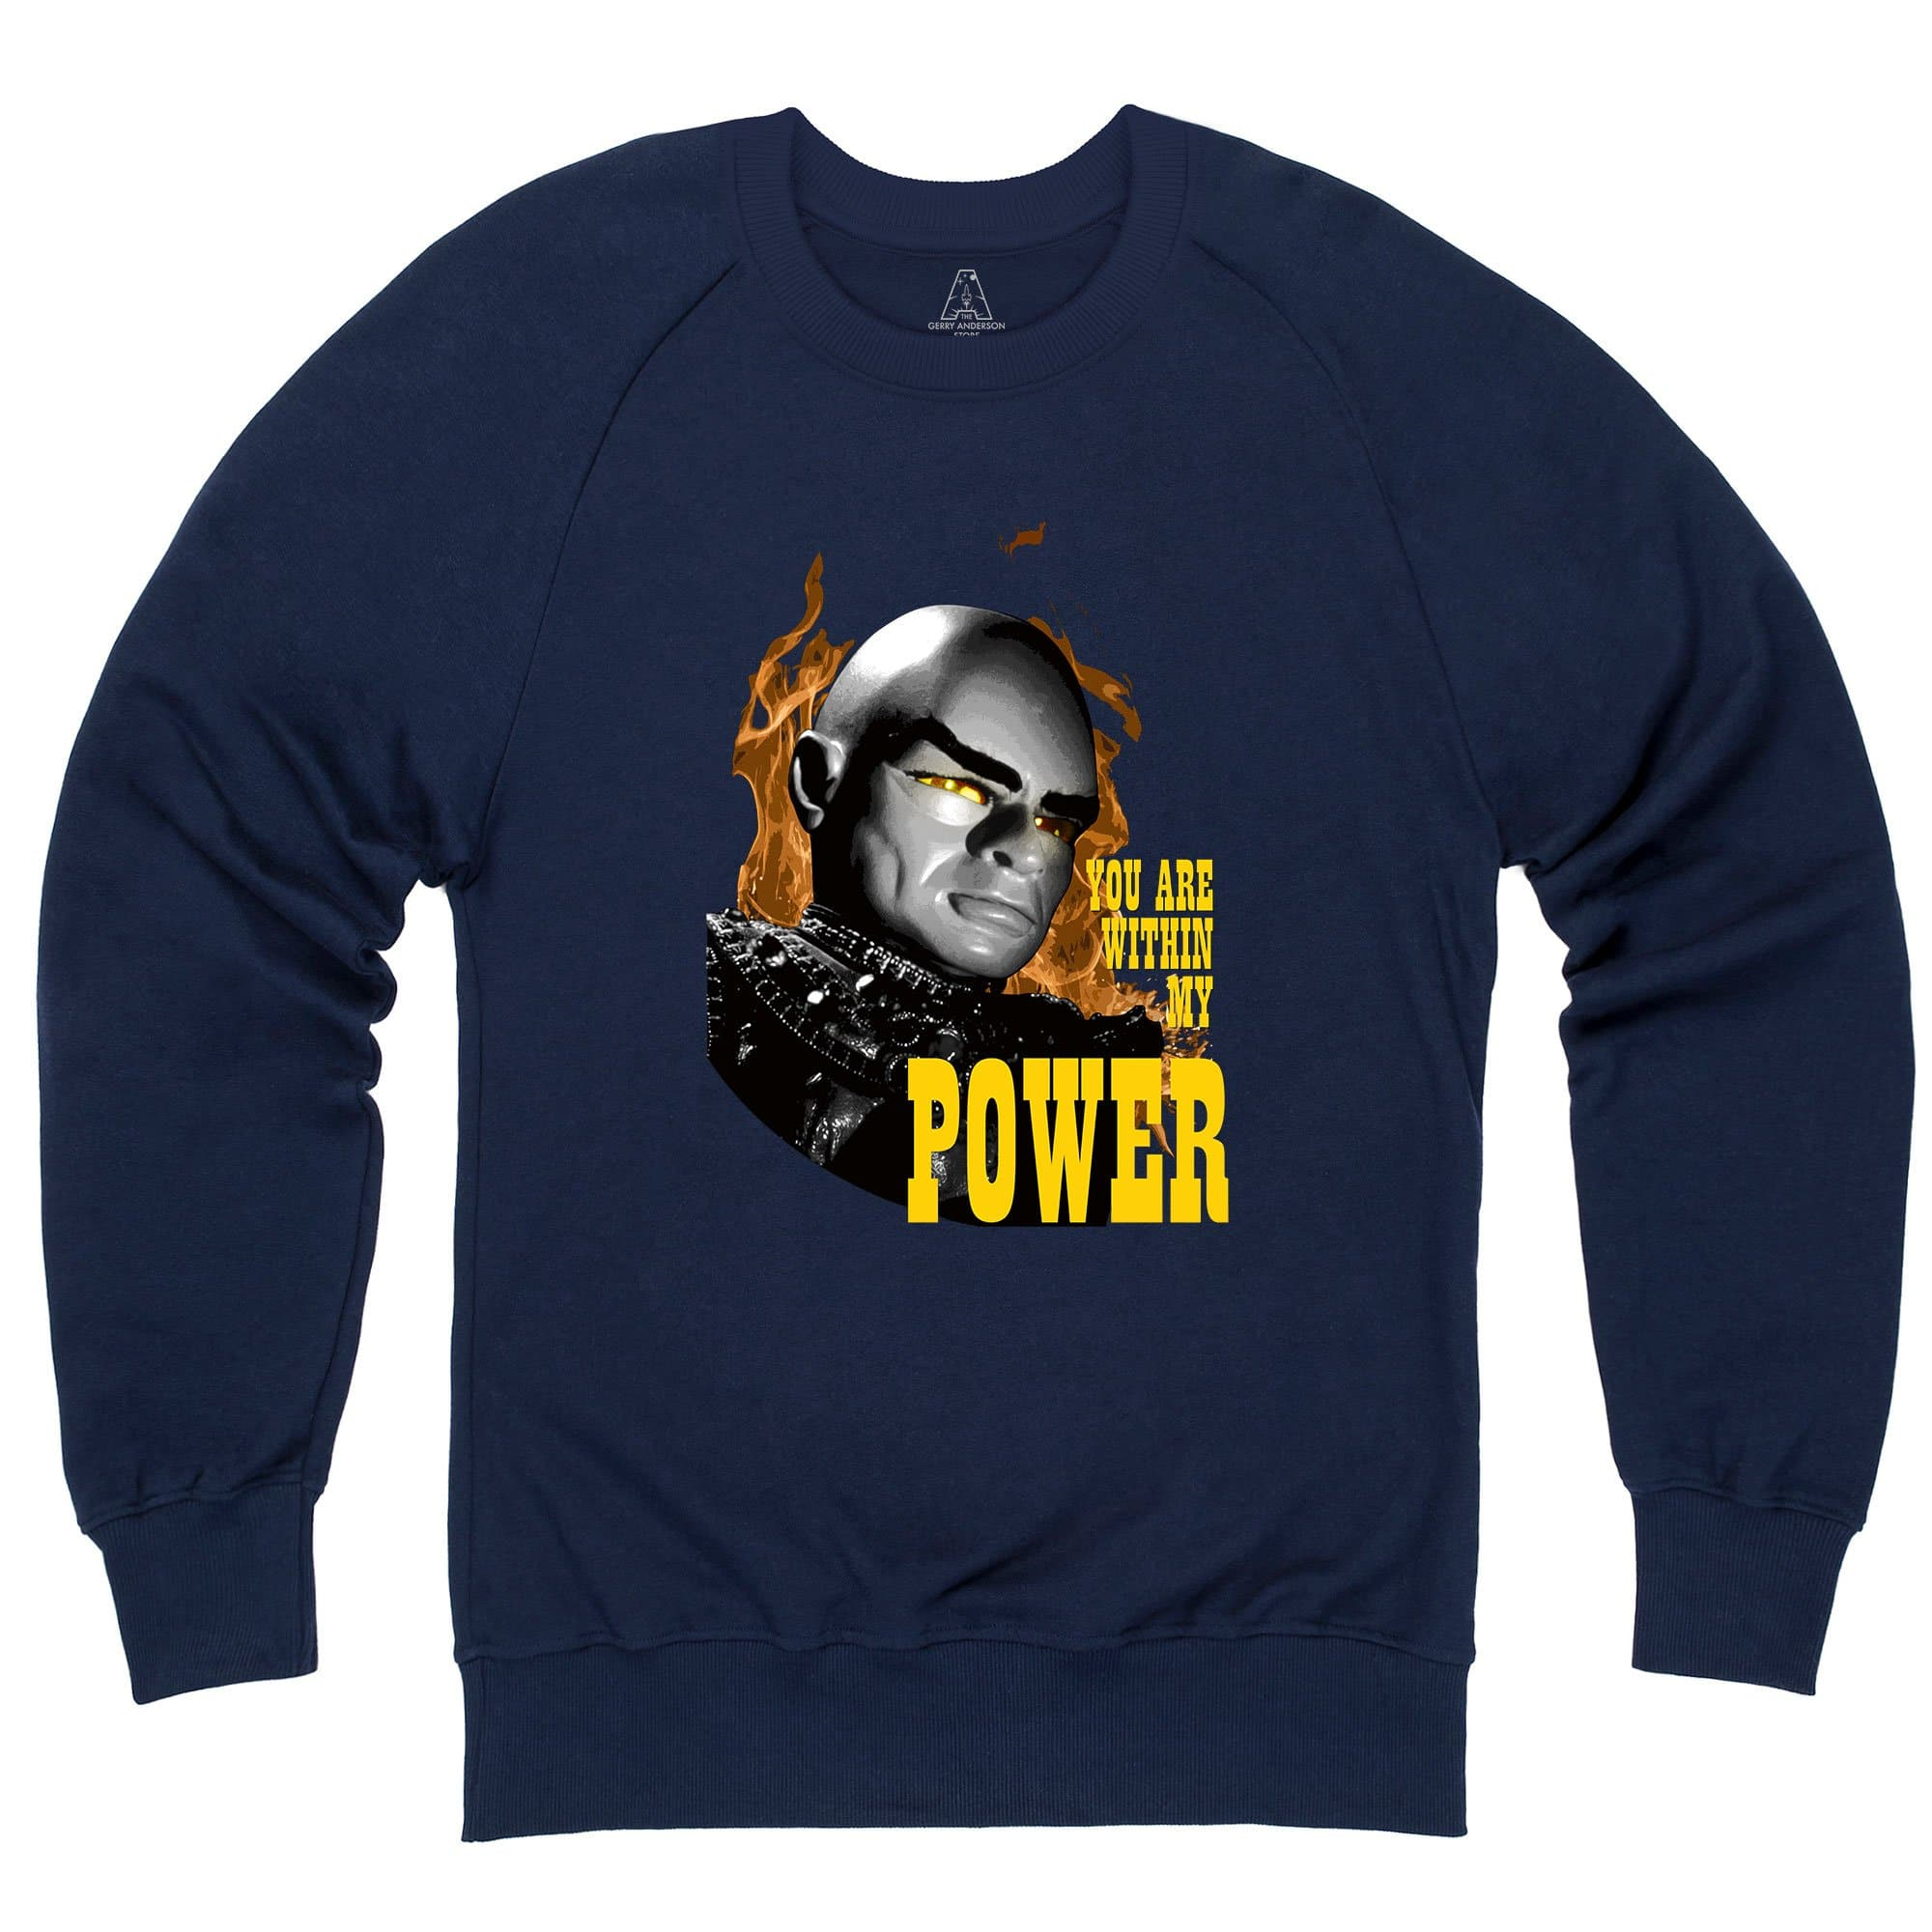 The Hood Sweatshirt [Official & Exclusive] - The Gerry Anderson Store